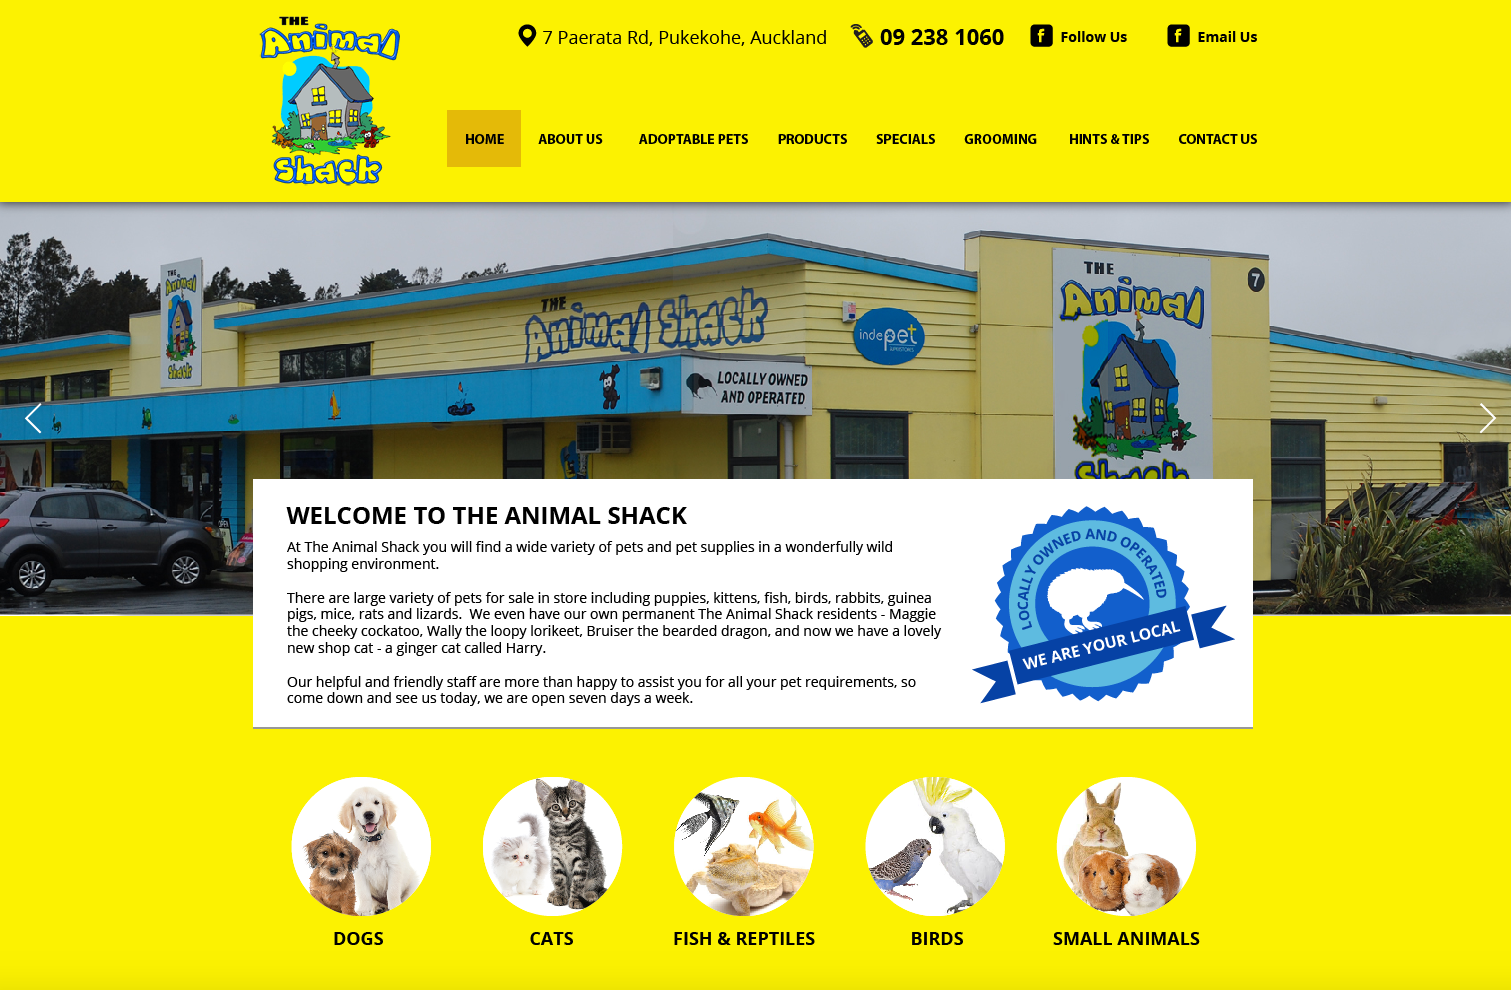 The Animal Shack Website